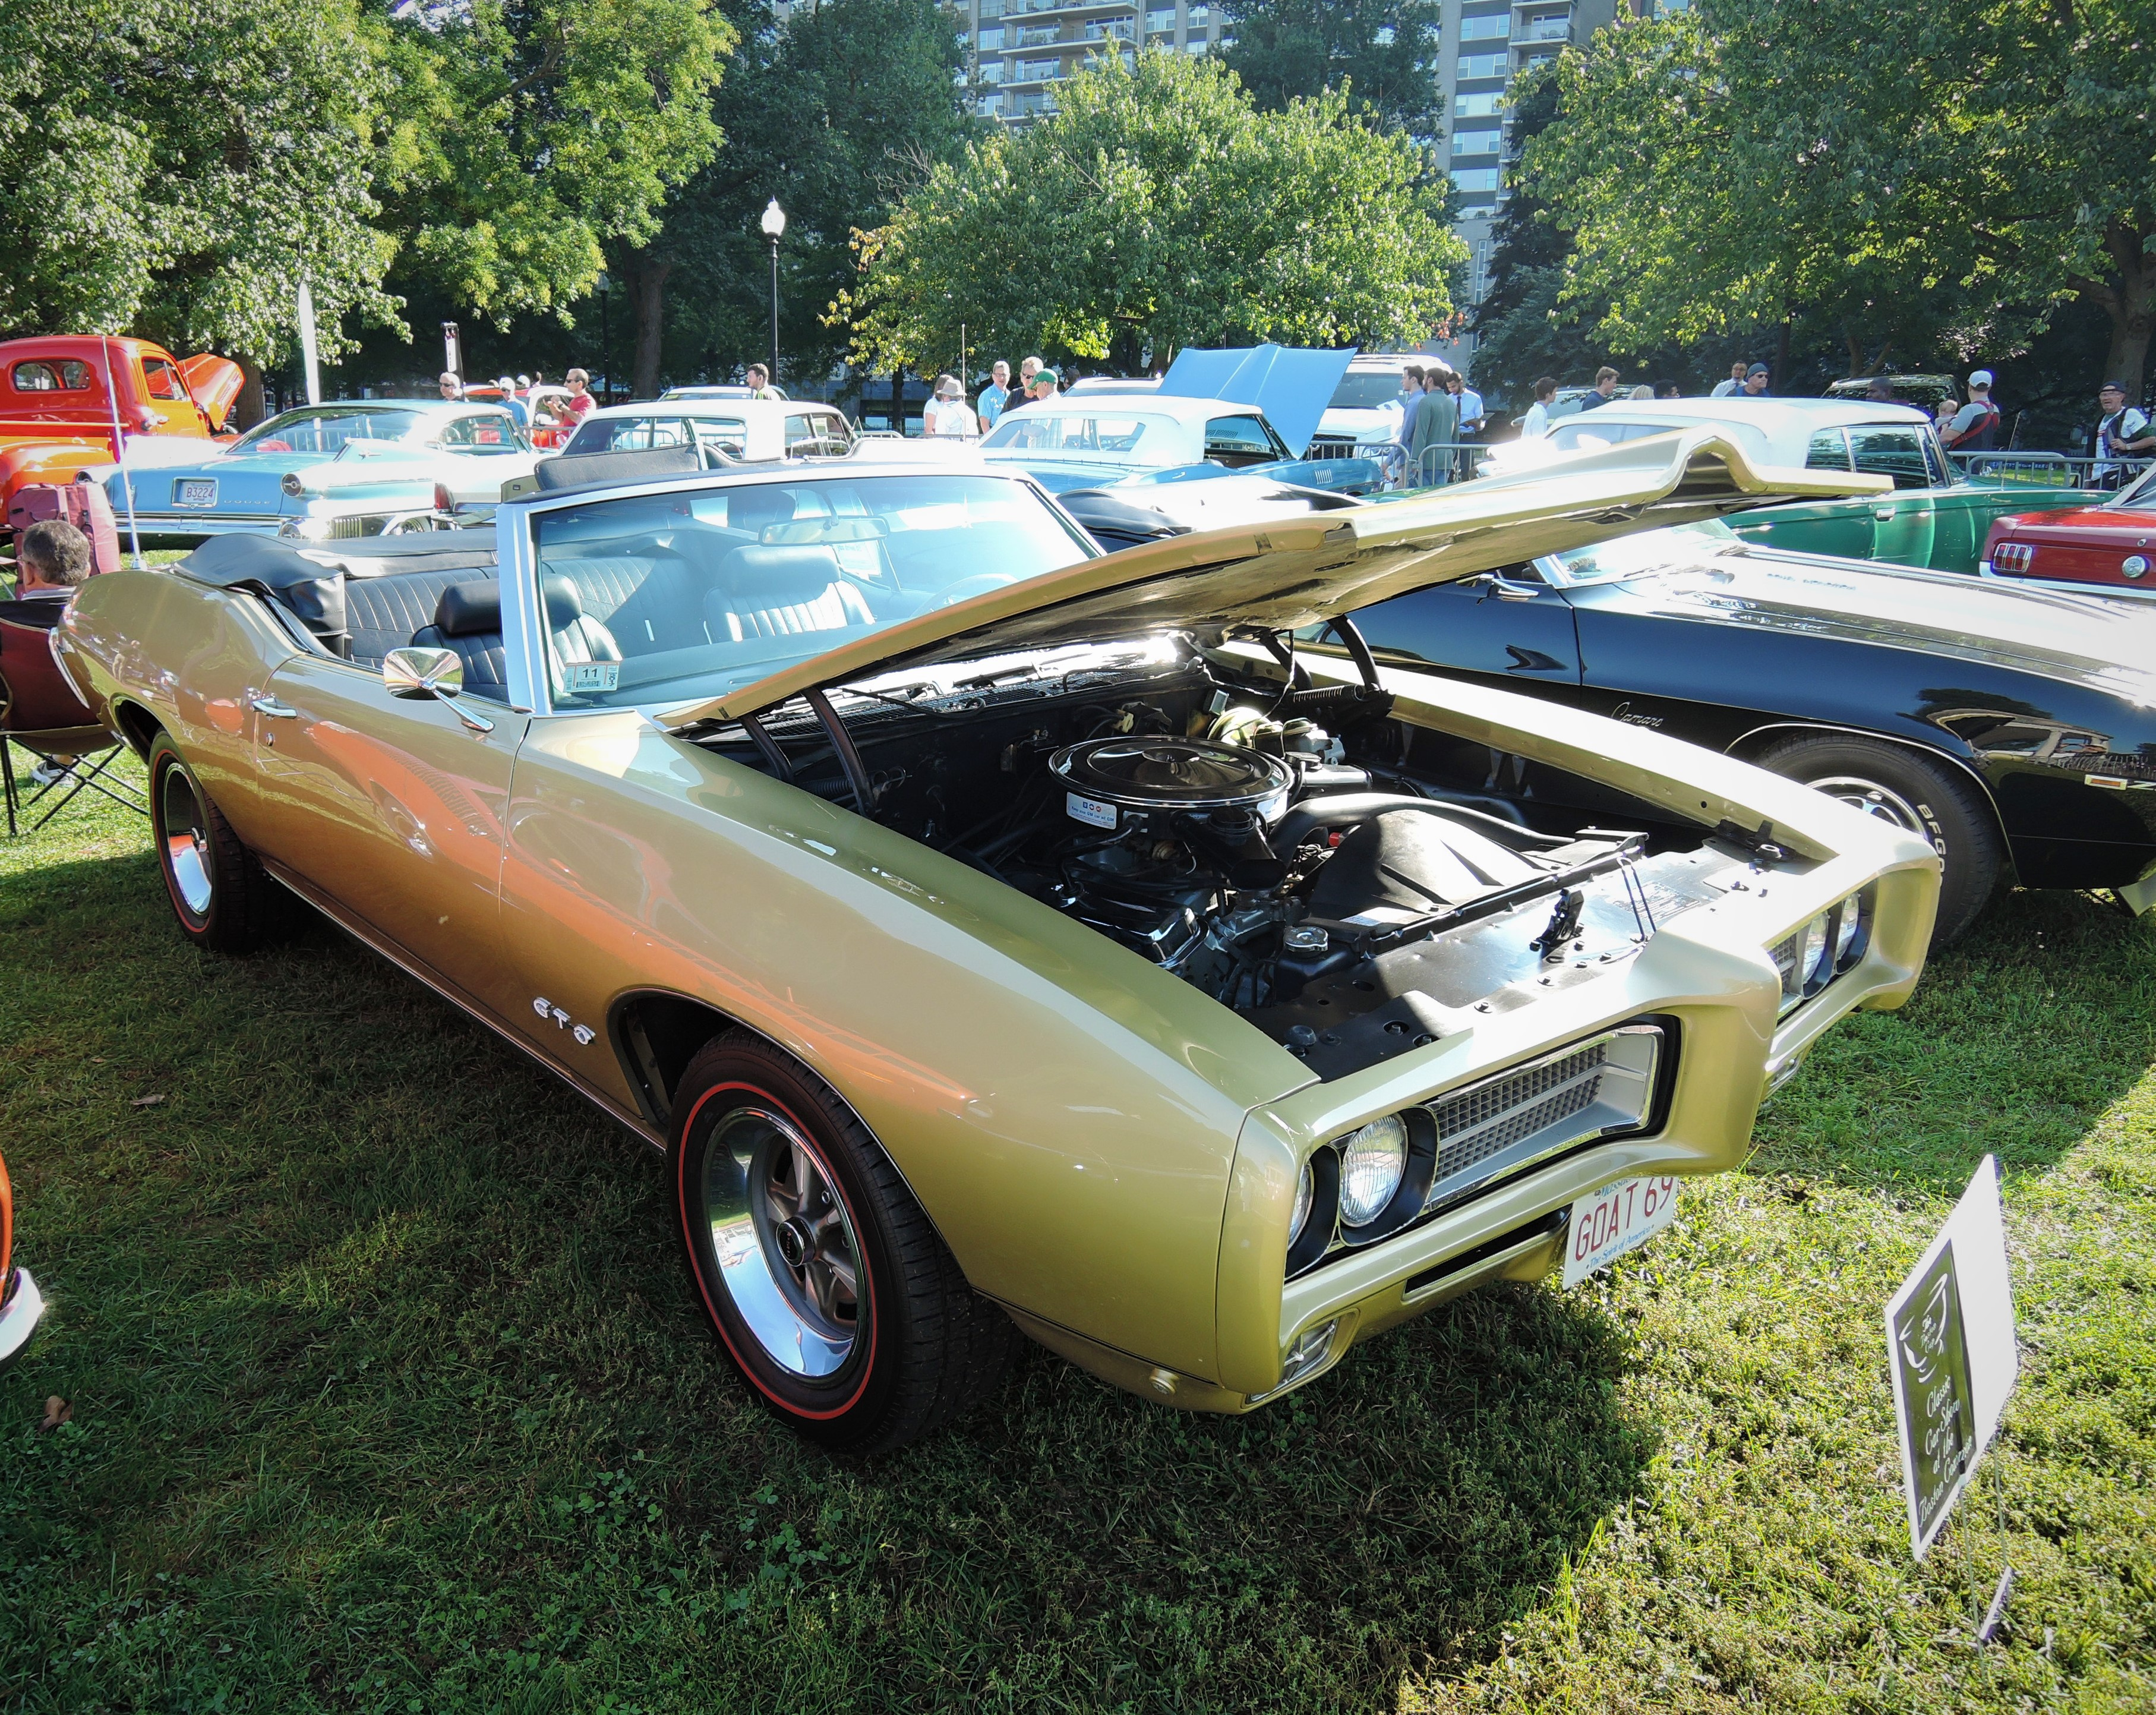 green 1969 Pontiac GTO Convertible - The Boston Cup 2017